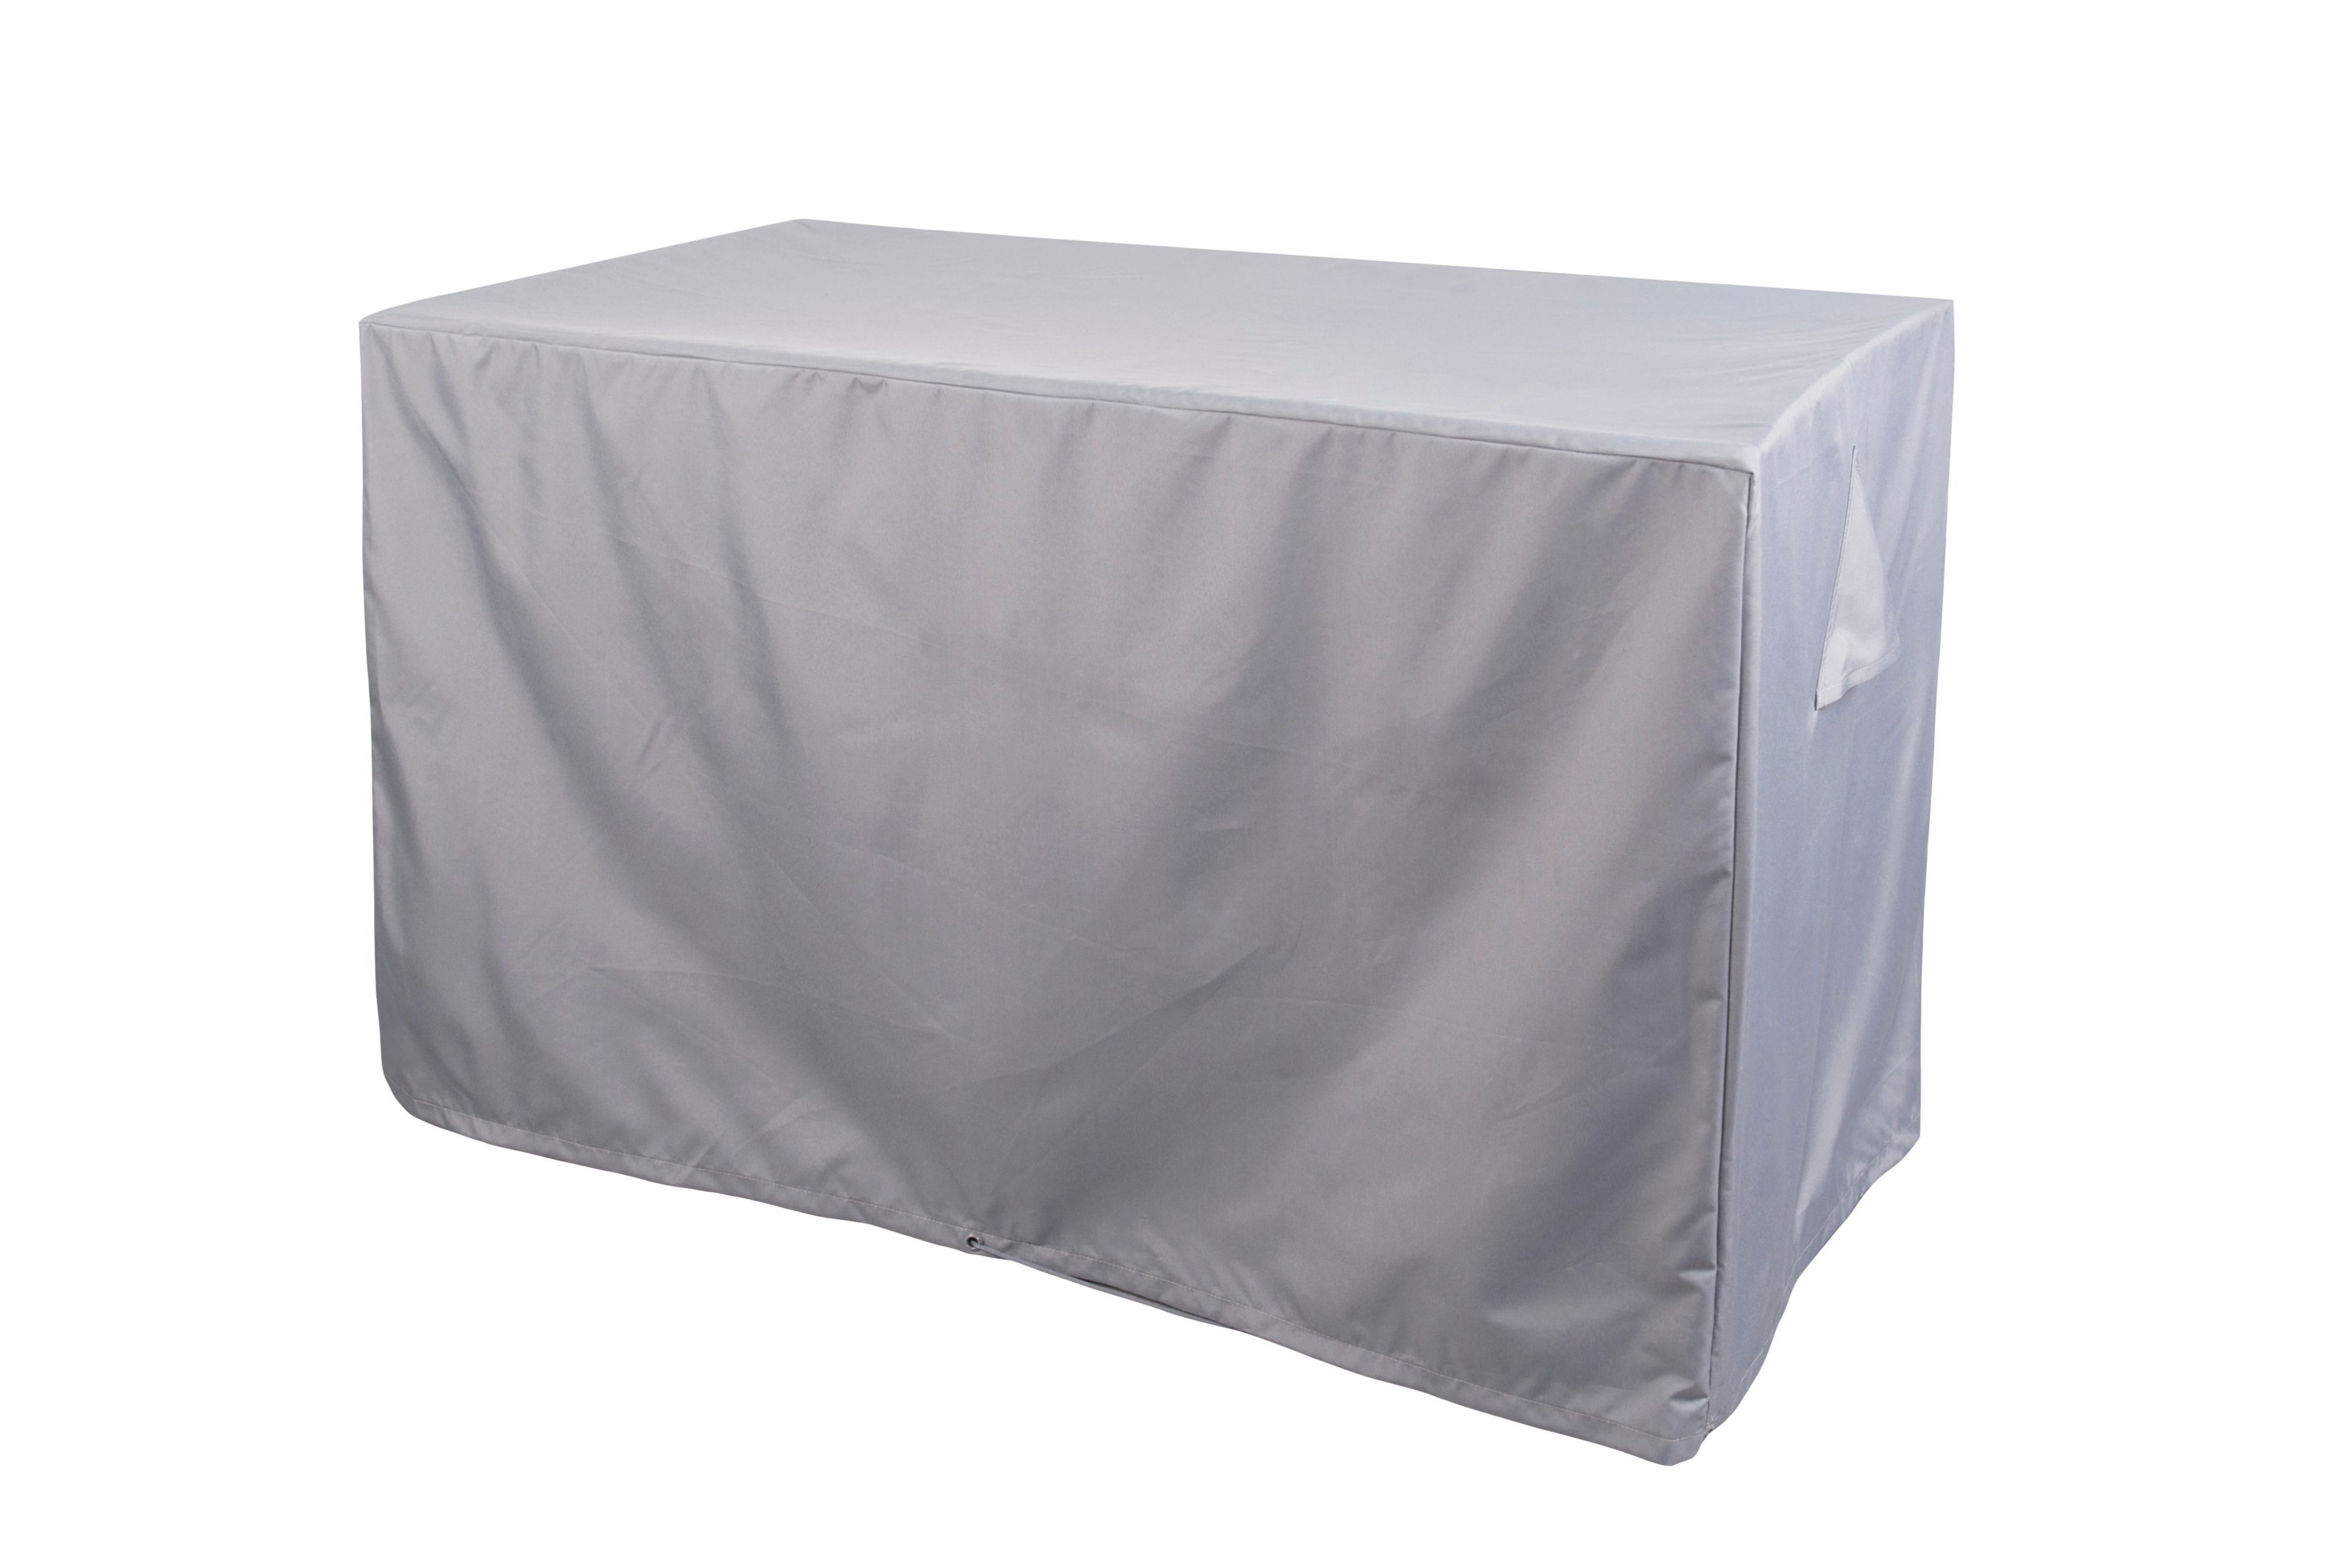 Blooma Protective Cover B Q For All Your Home And Garden Supplies And Advice On All The Latest Diy Trends Home Garden B Q Diy